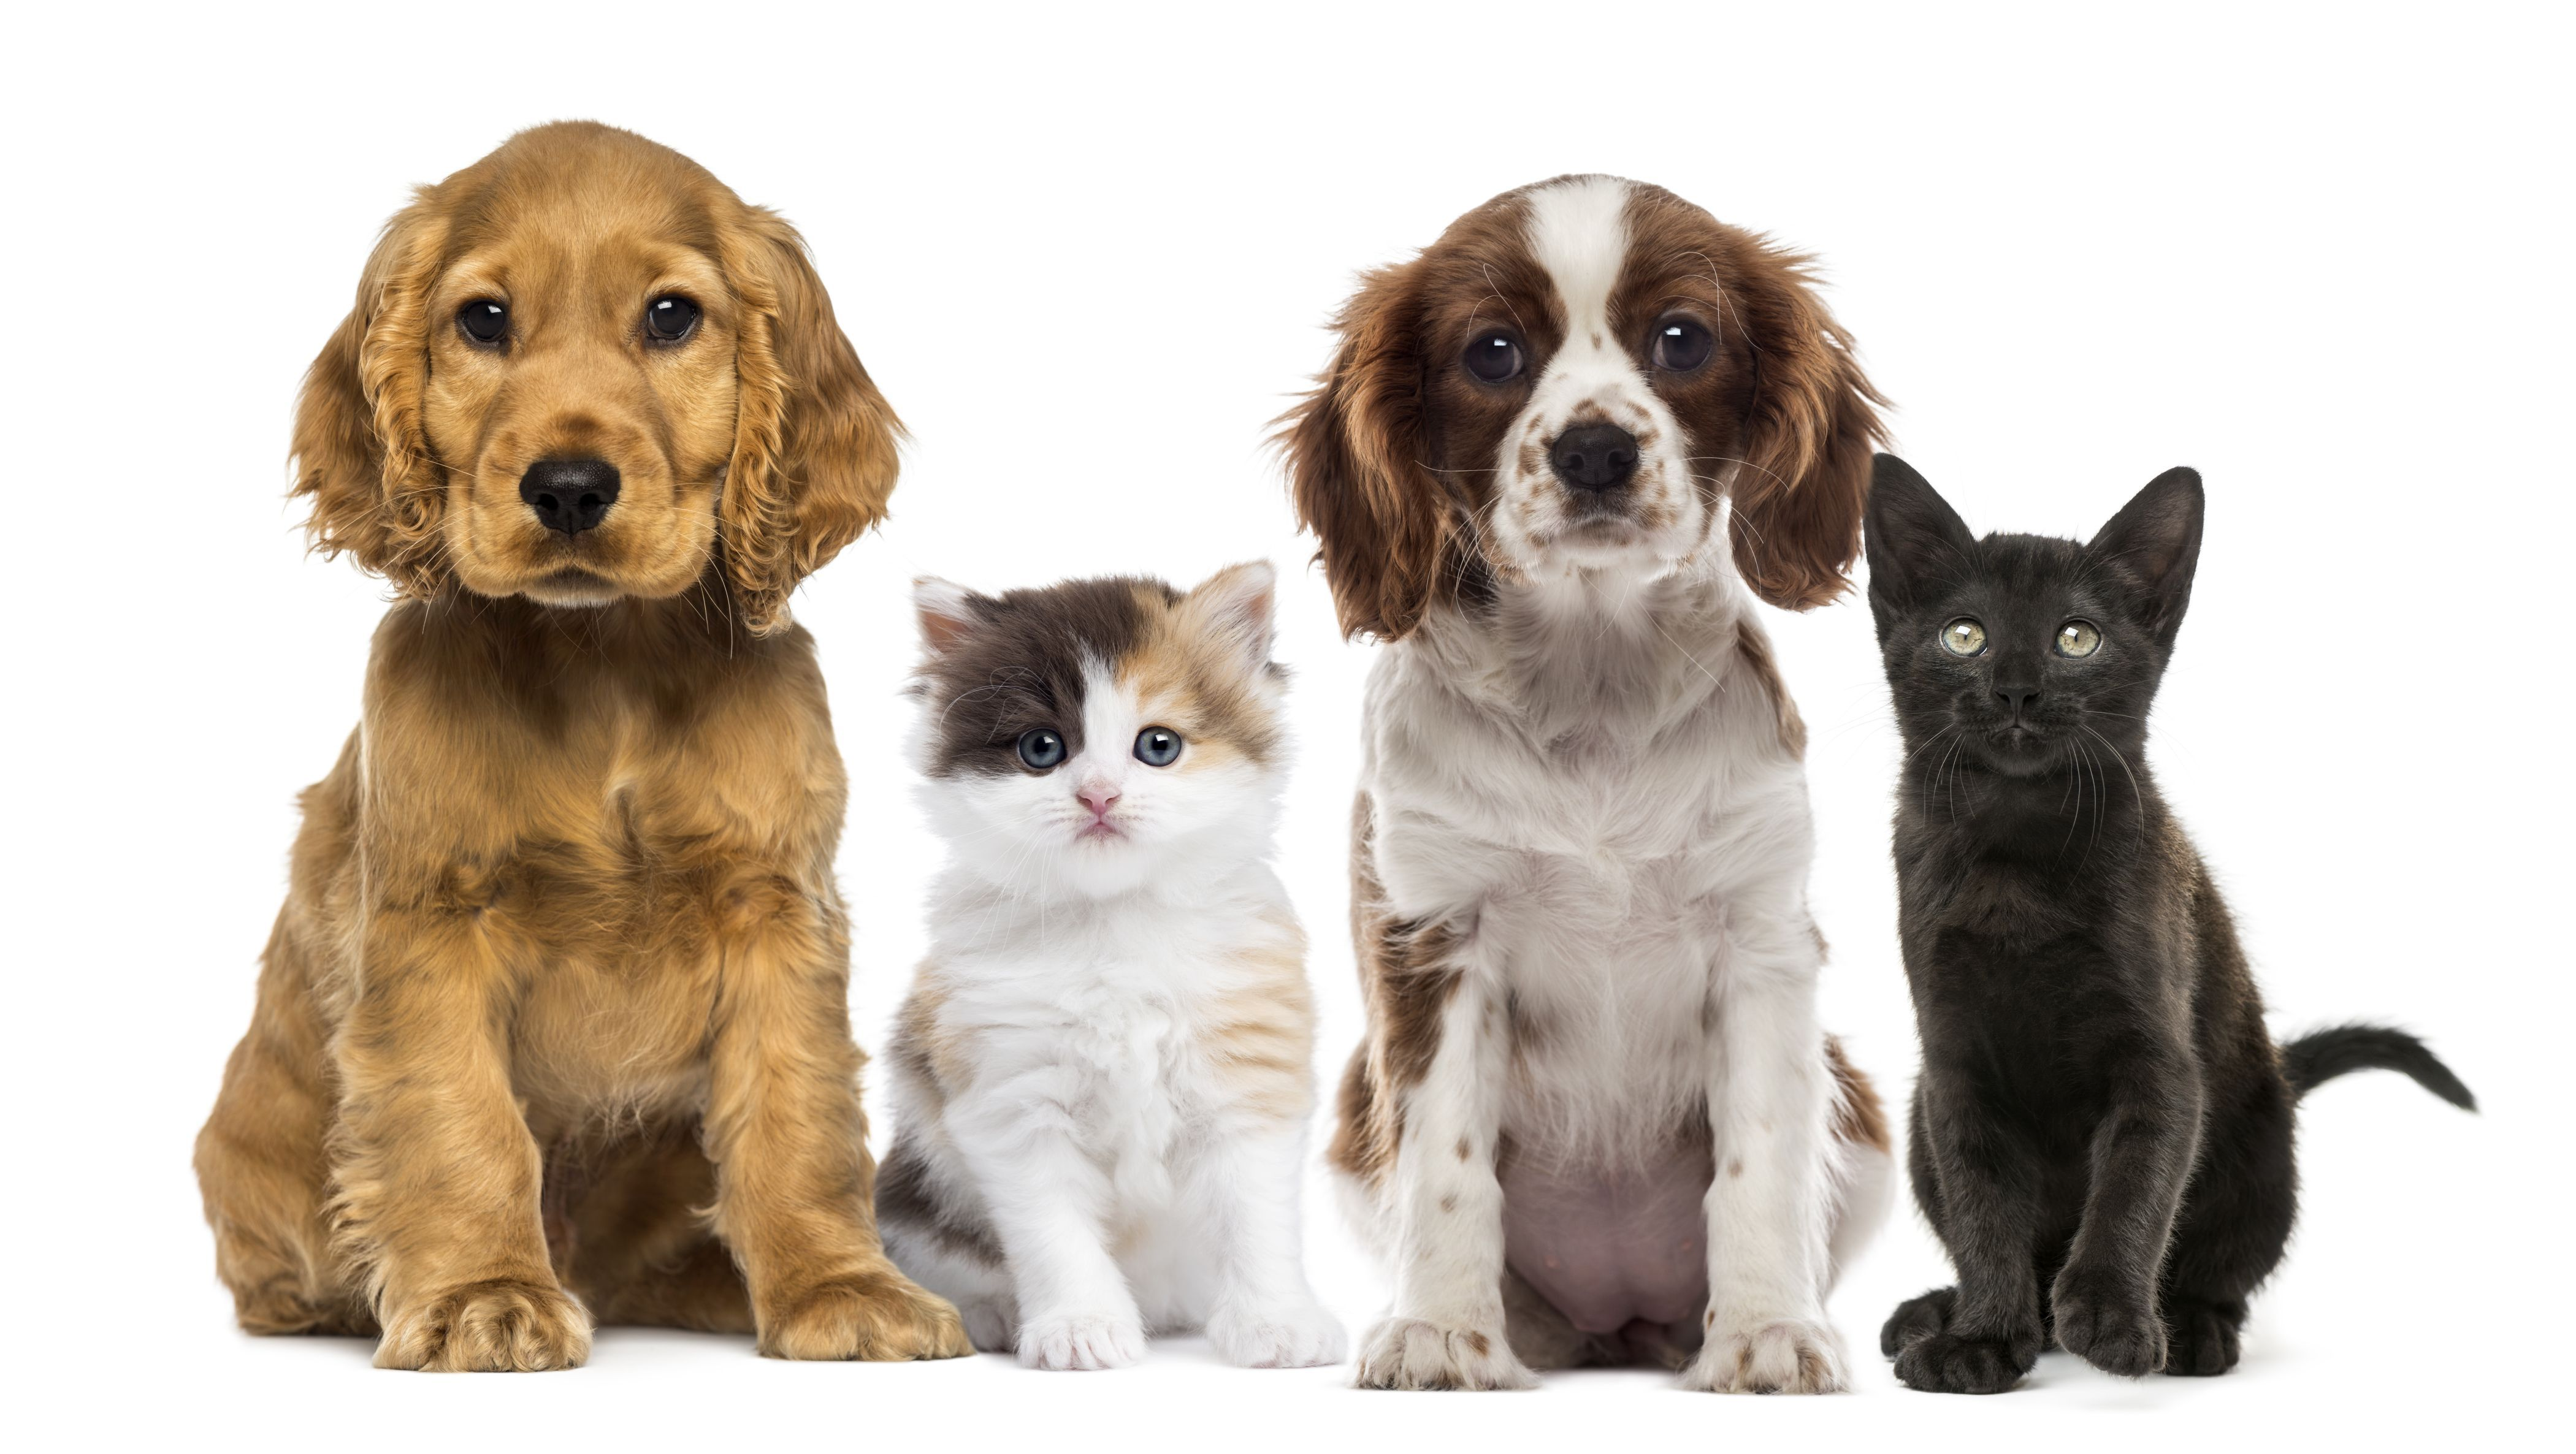 2 Dogs And 2 Cats 4k Ultra Hd Wallpaper Background Image